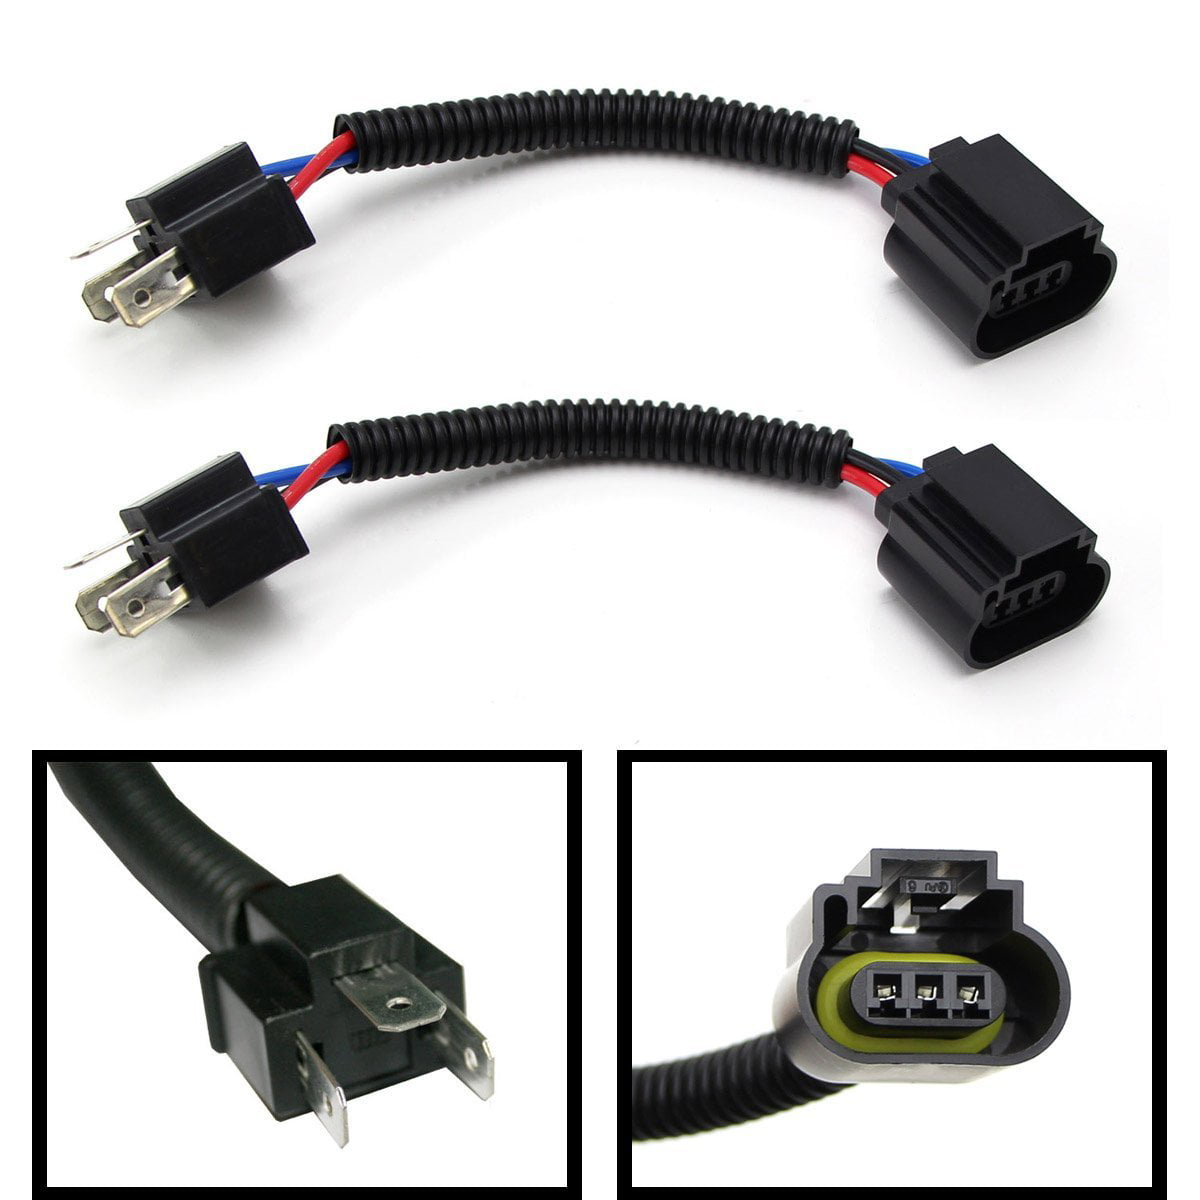 (2) ijdmtoy h4 9003 to h13 9008 pigtail wire wiring harness adapters for h4 h13 headlight conversion retrofit walmart com Harness Wiring 21119339